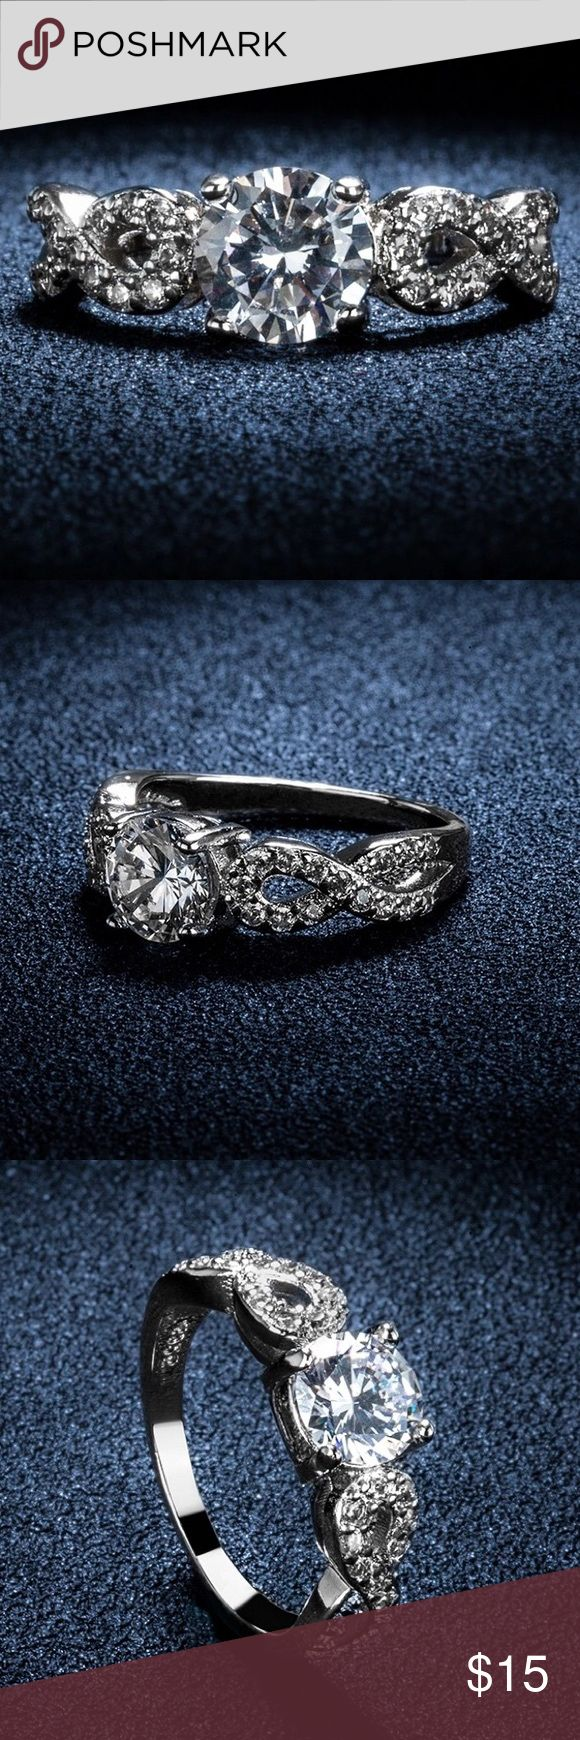 Stylish ring size 7! Big heartstone 3 Carat AAA cz diamond jewelry engagement wedding rings For women white gold plated! Occasion:Daily Wear,Wedding,Party,Engagement •30% silver • with a small box  Price is firm! Happy shopping y'all! Jewelry Rings